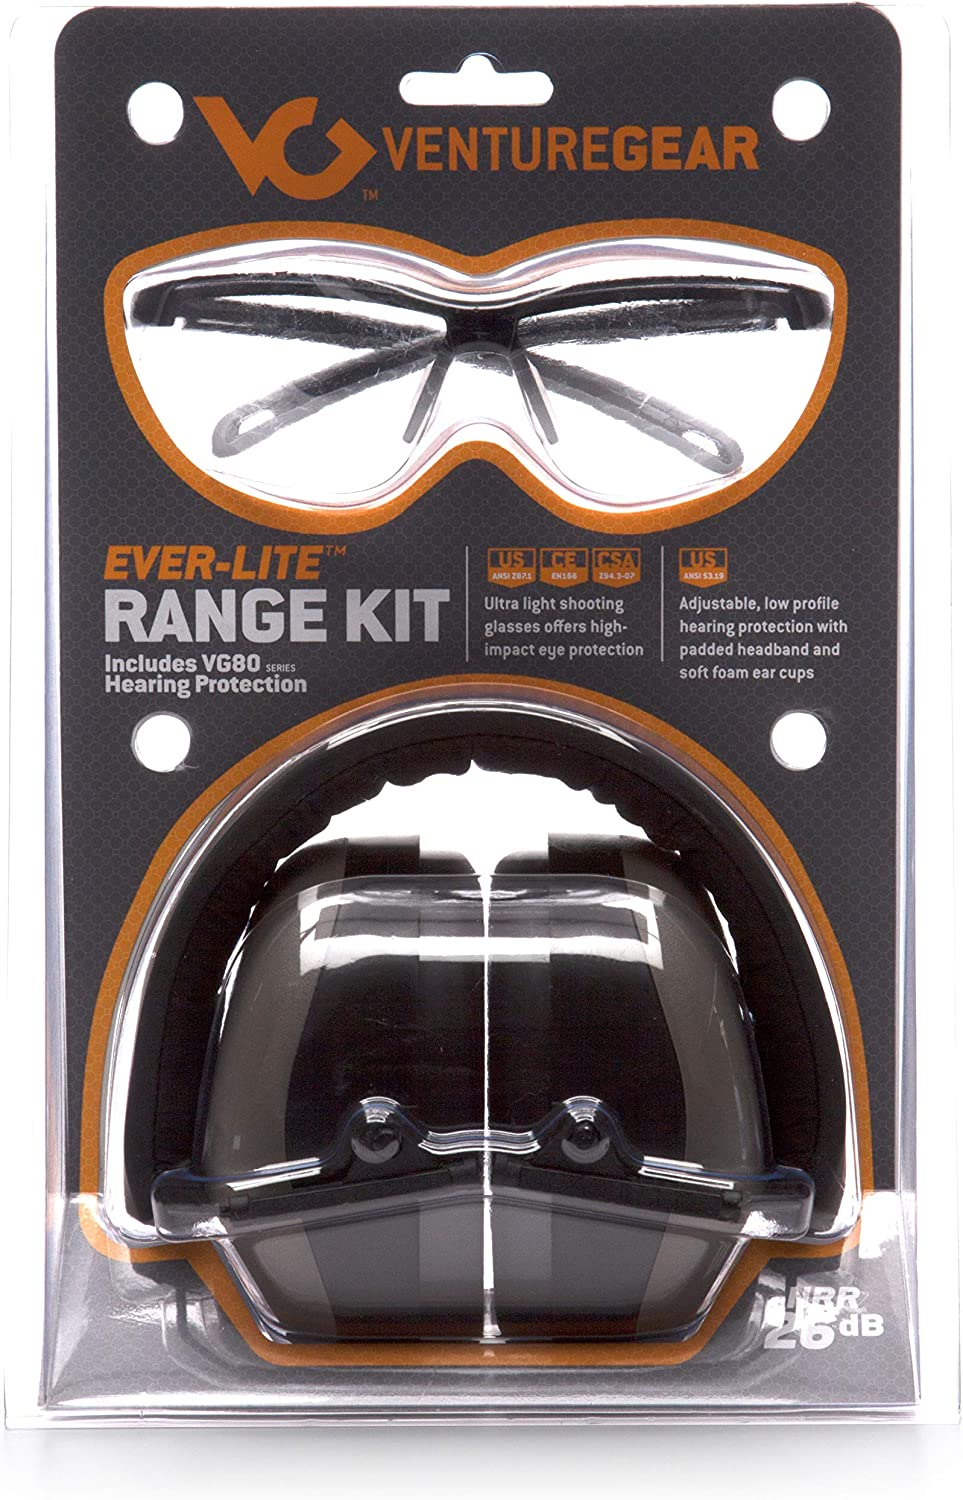 Venture Gear Shooting Glass and Hearing Protection Range Kit